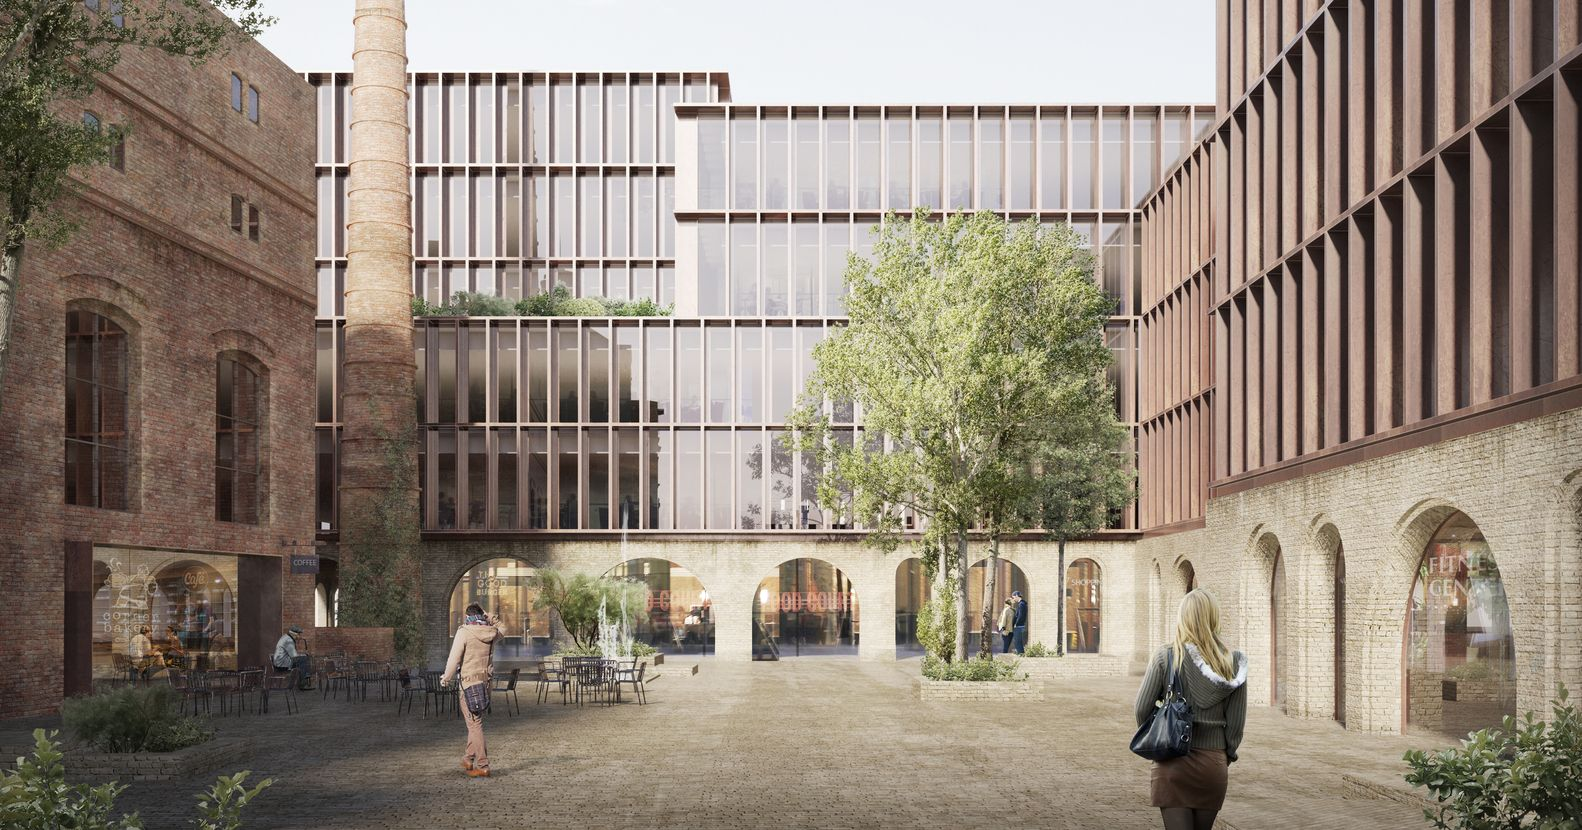 Gallery Of Schmidt Hammer Lassen Selected In Competition For Redevelopment Of Riga Historic Quarter 1 Riga Win Competitions Architecture Old